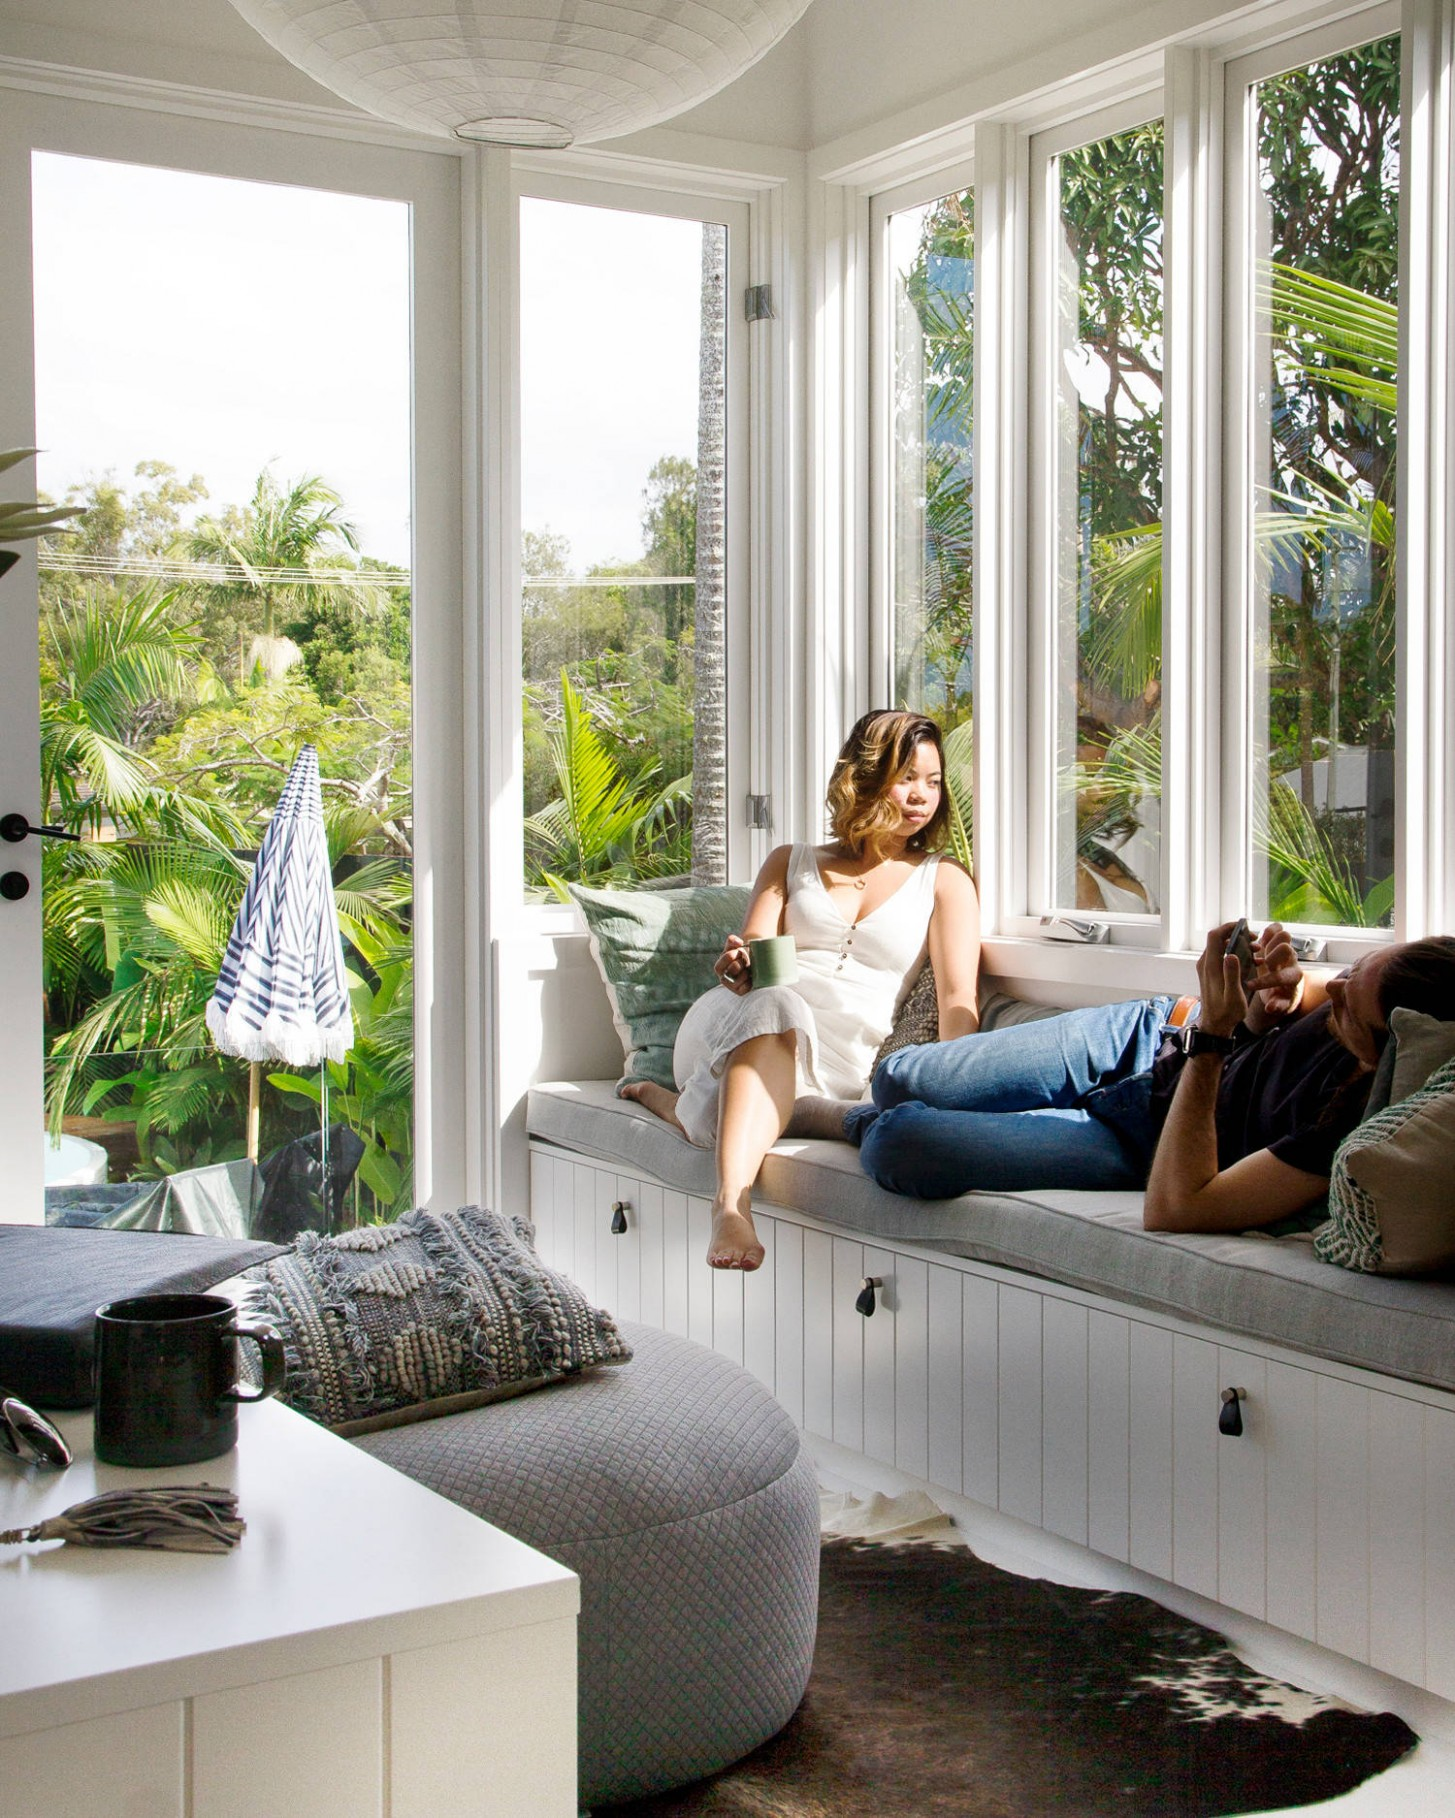 11+ Beautiful Tropical Sunroom Pictures & Ideas November 11  Houzz - Small Sunroom Off Bedroom